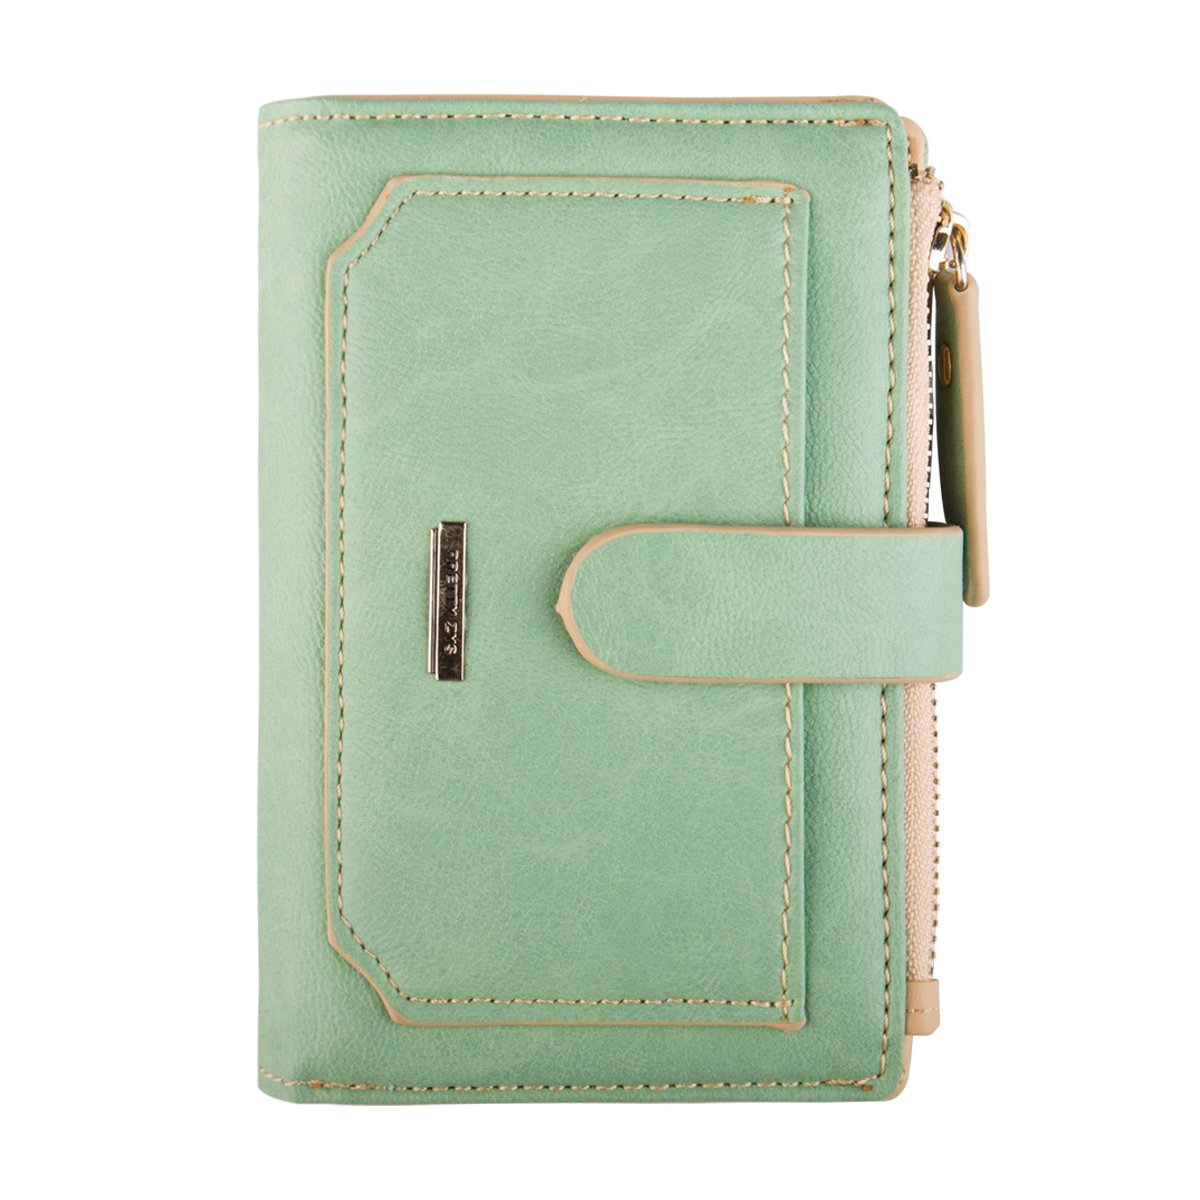 INDRESSME Womens Wallet Candy Color Bifold Mini Vintage Card Holder Compact Wallet for Women Lime by INDRESSME